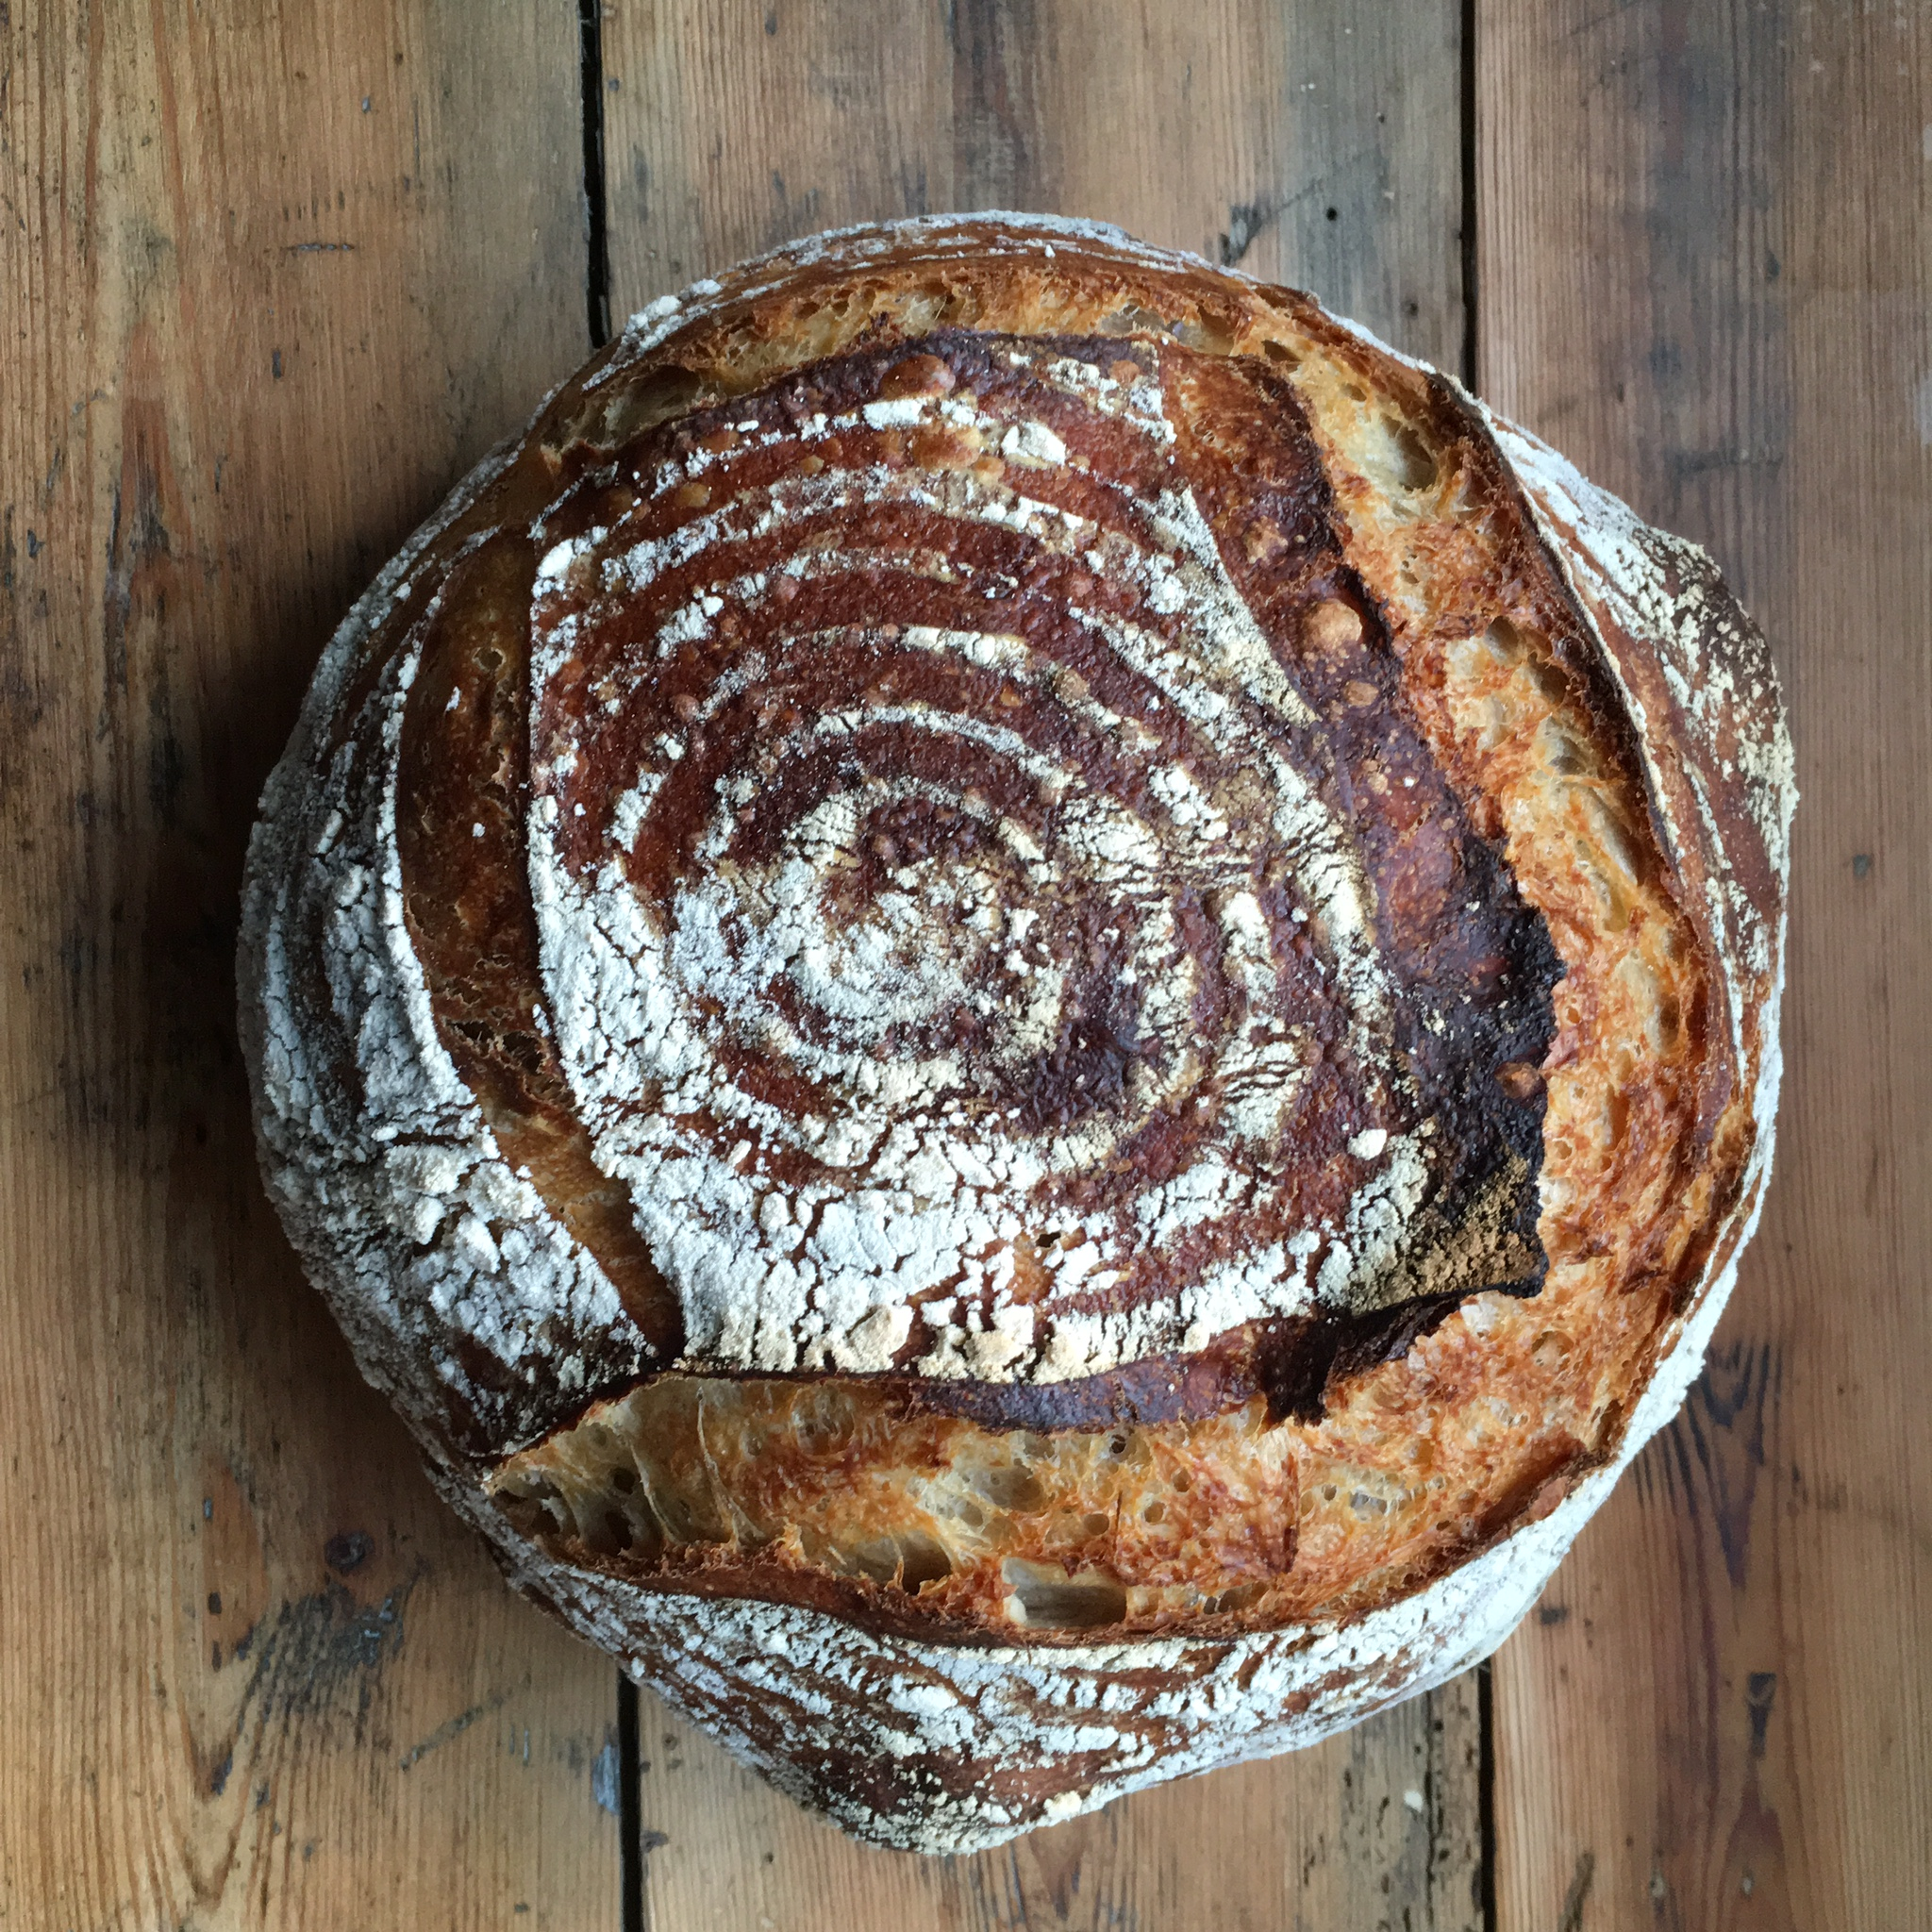 We bake our own sourdough and levain breads daily. Each loaf takes 24-36 hours to mix, ferment, shape, prove and bake. There are only four ingredients in our bread. Flour, water, salt & yeast. We think it makes the best toast imaginable.